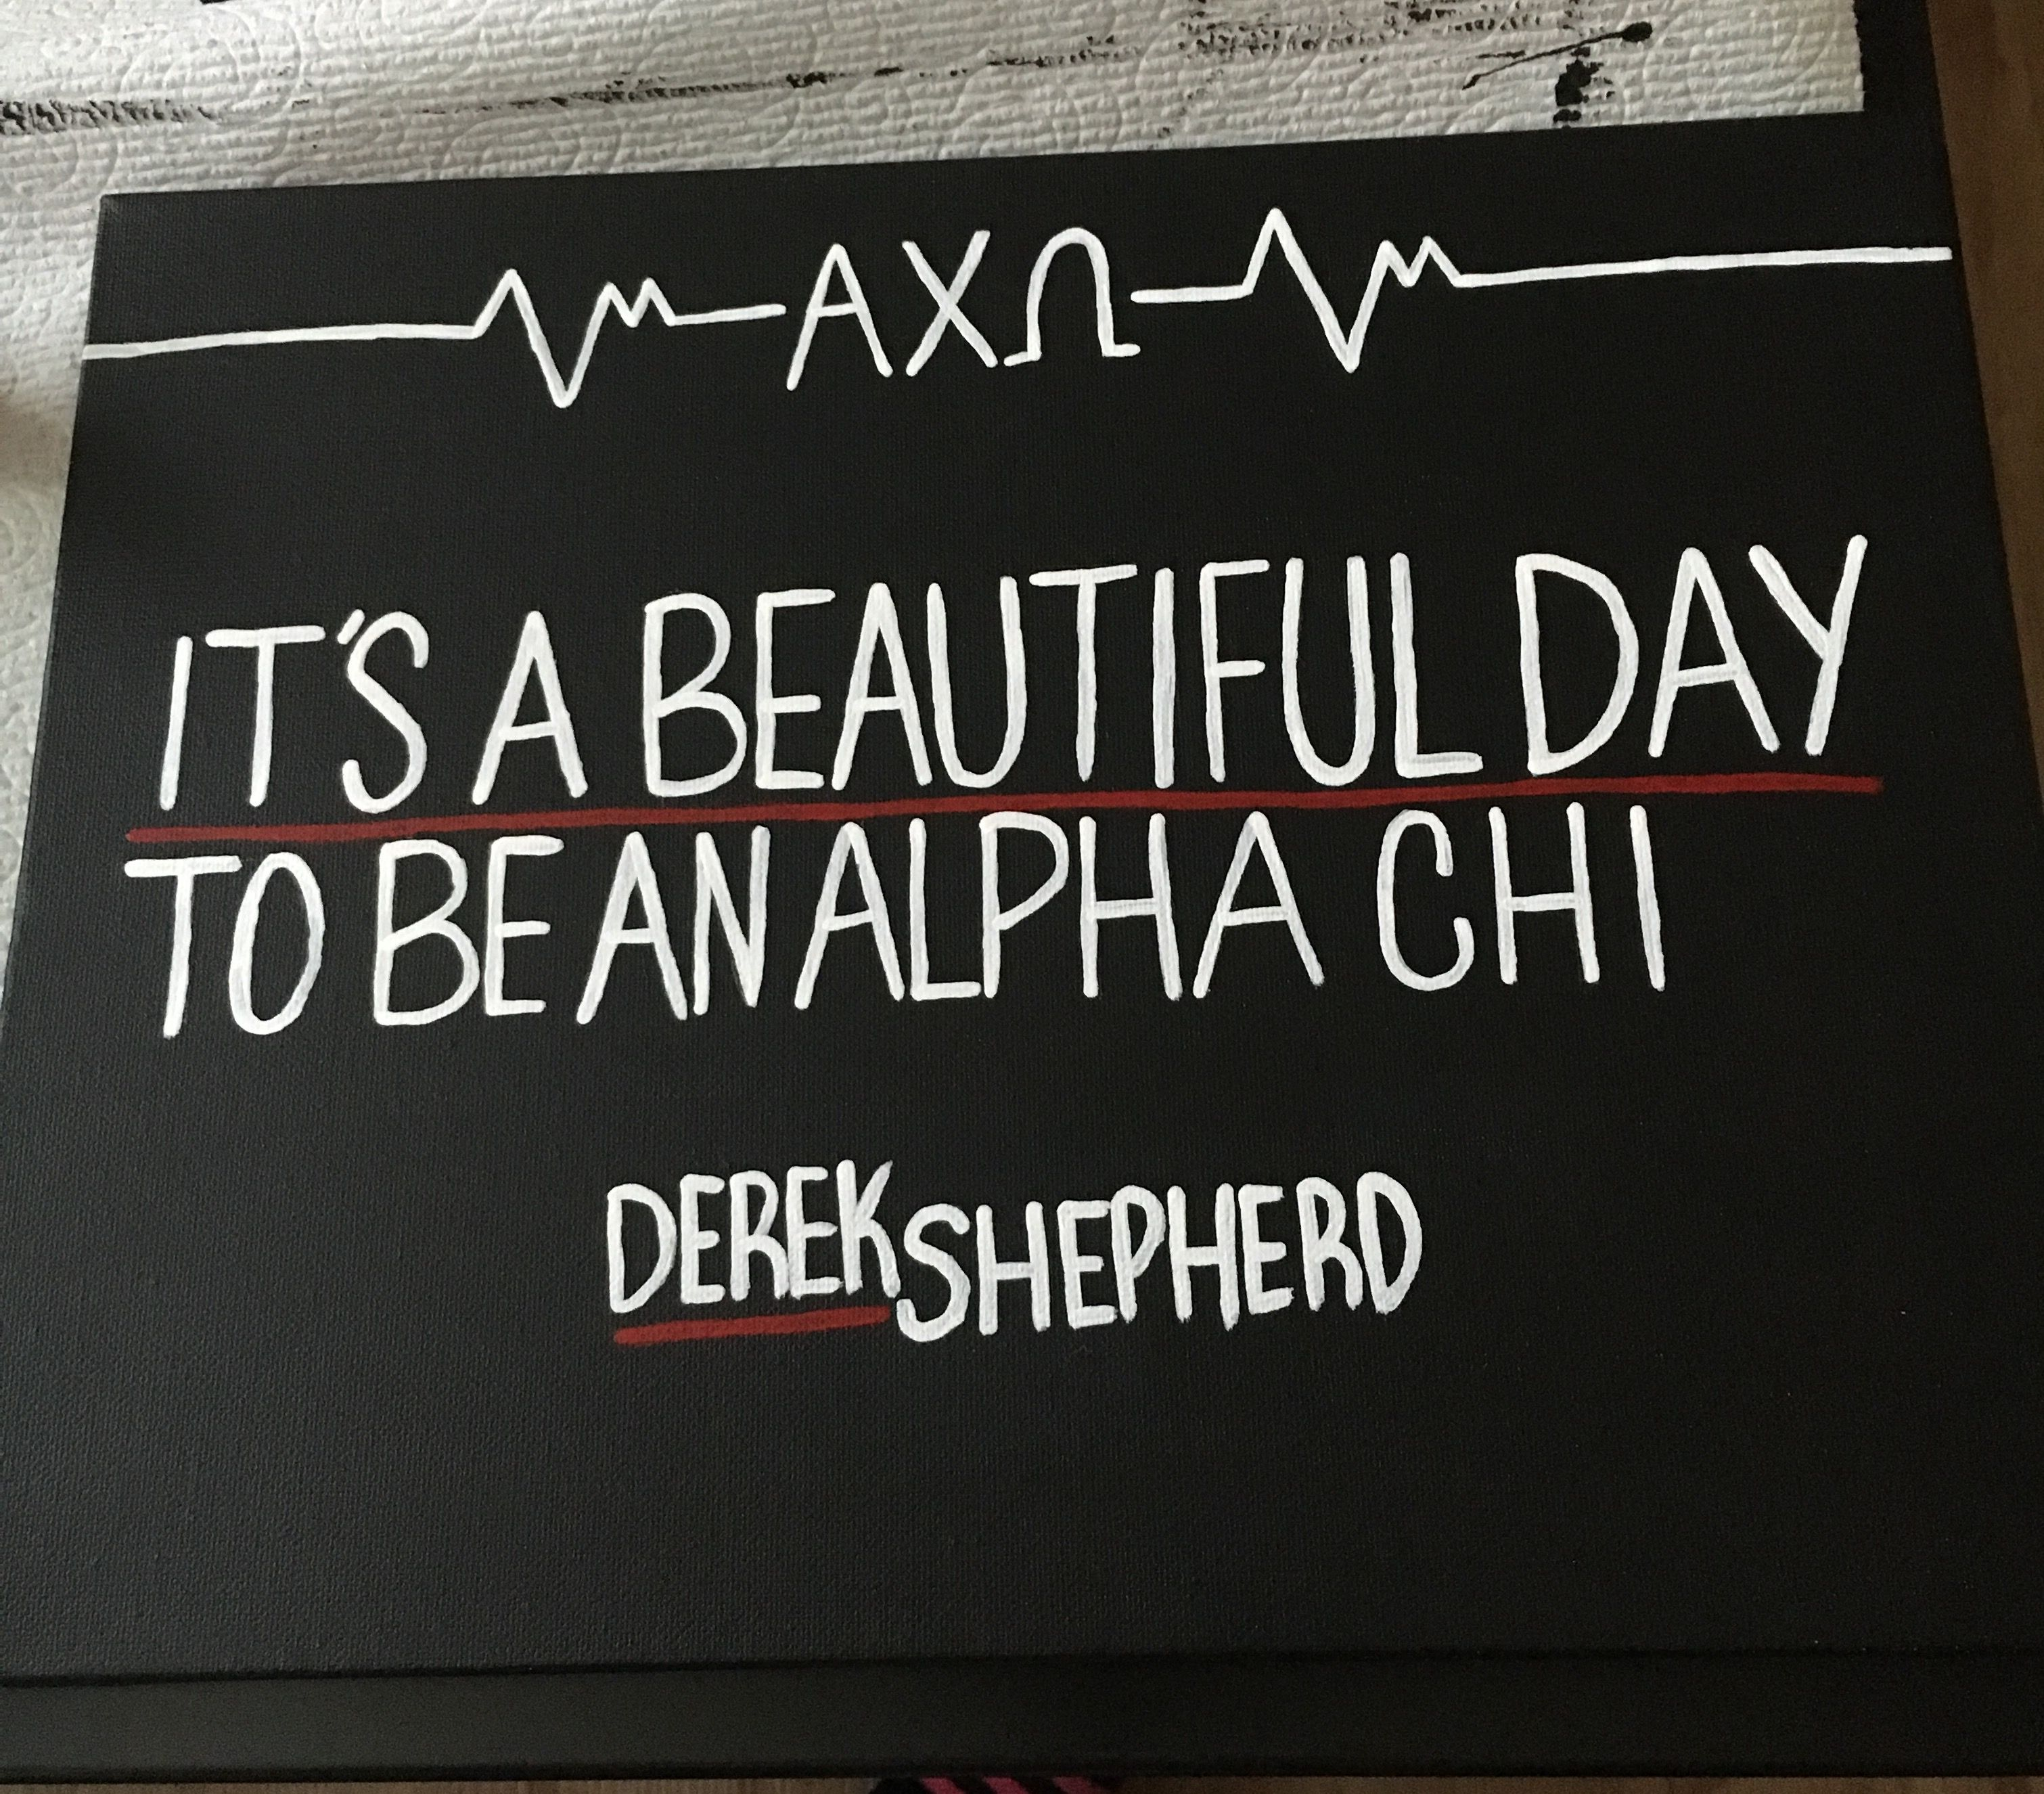 Greys Anatomy Quote - Alpha Chi Omega sorority | AXO Crafts ...